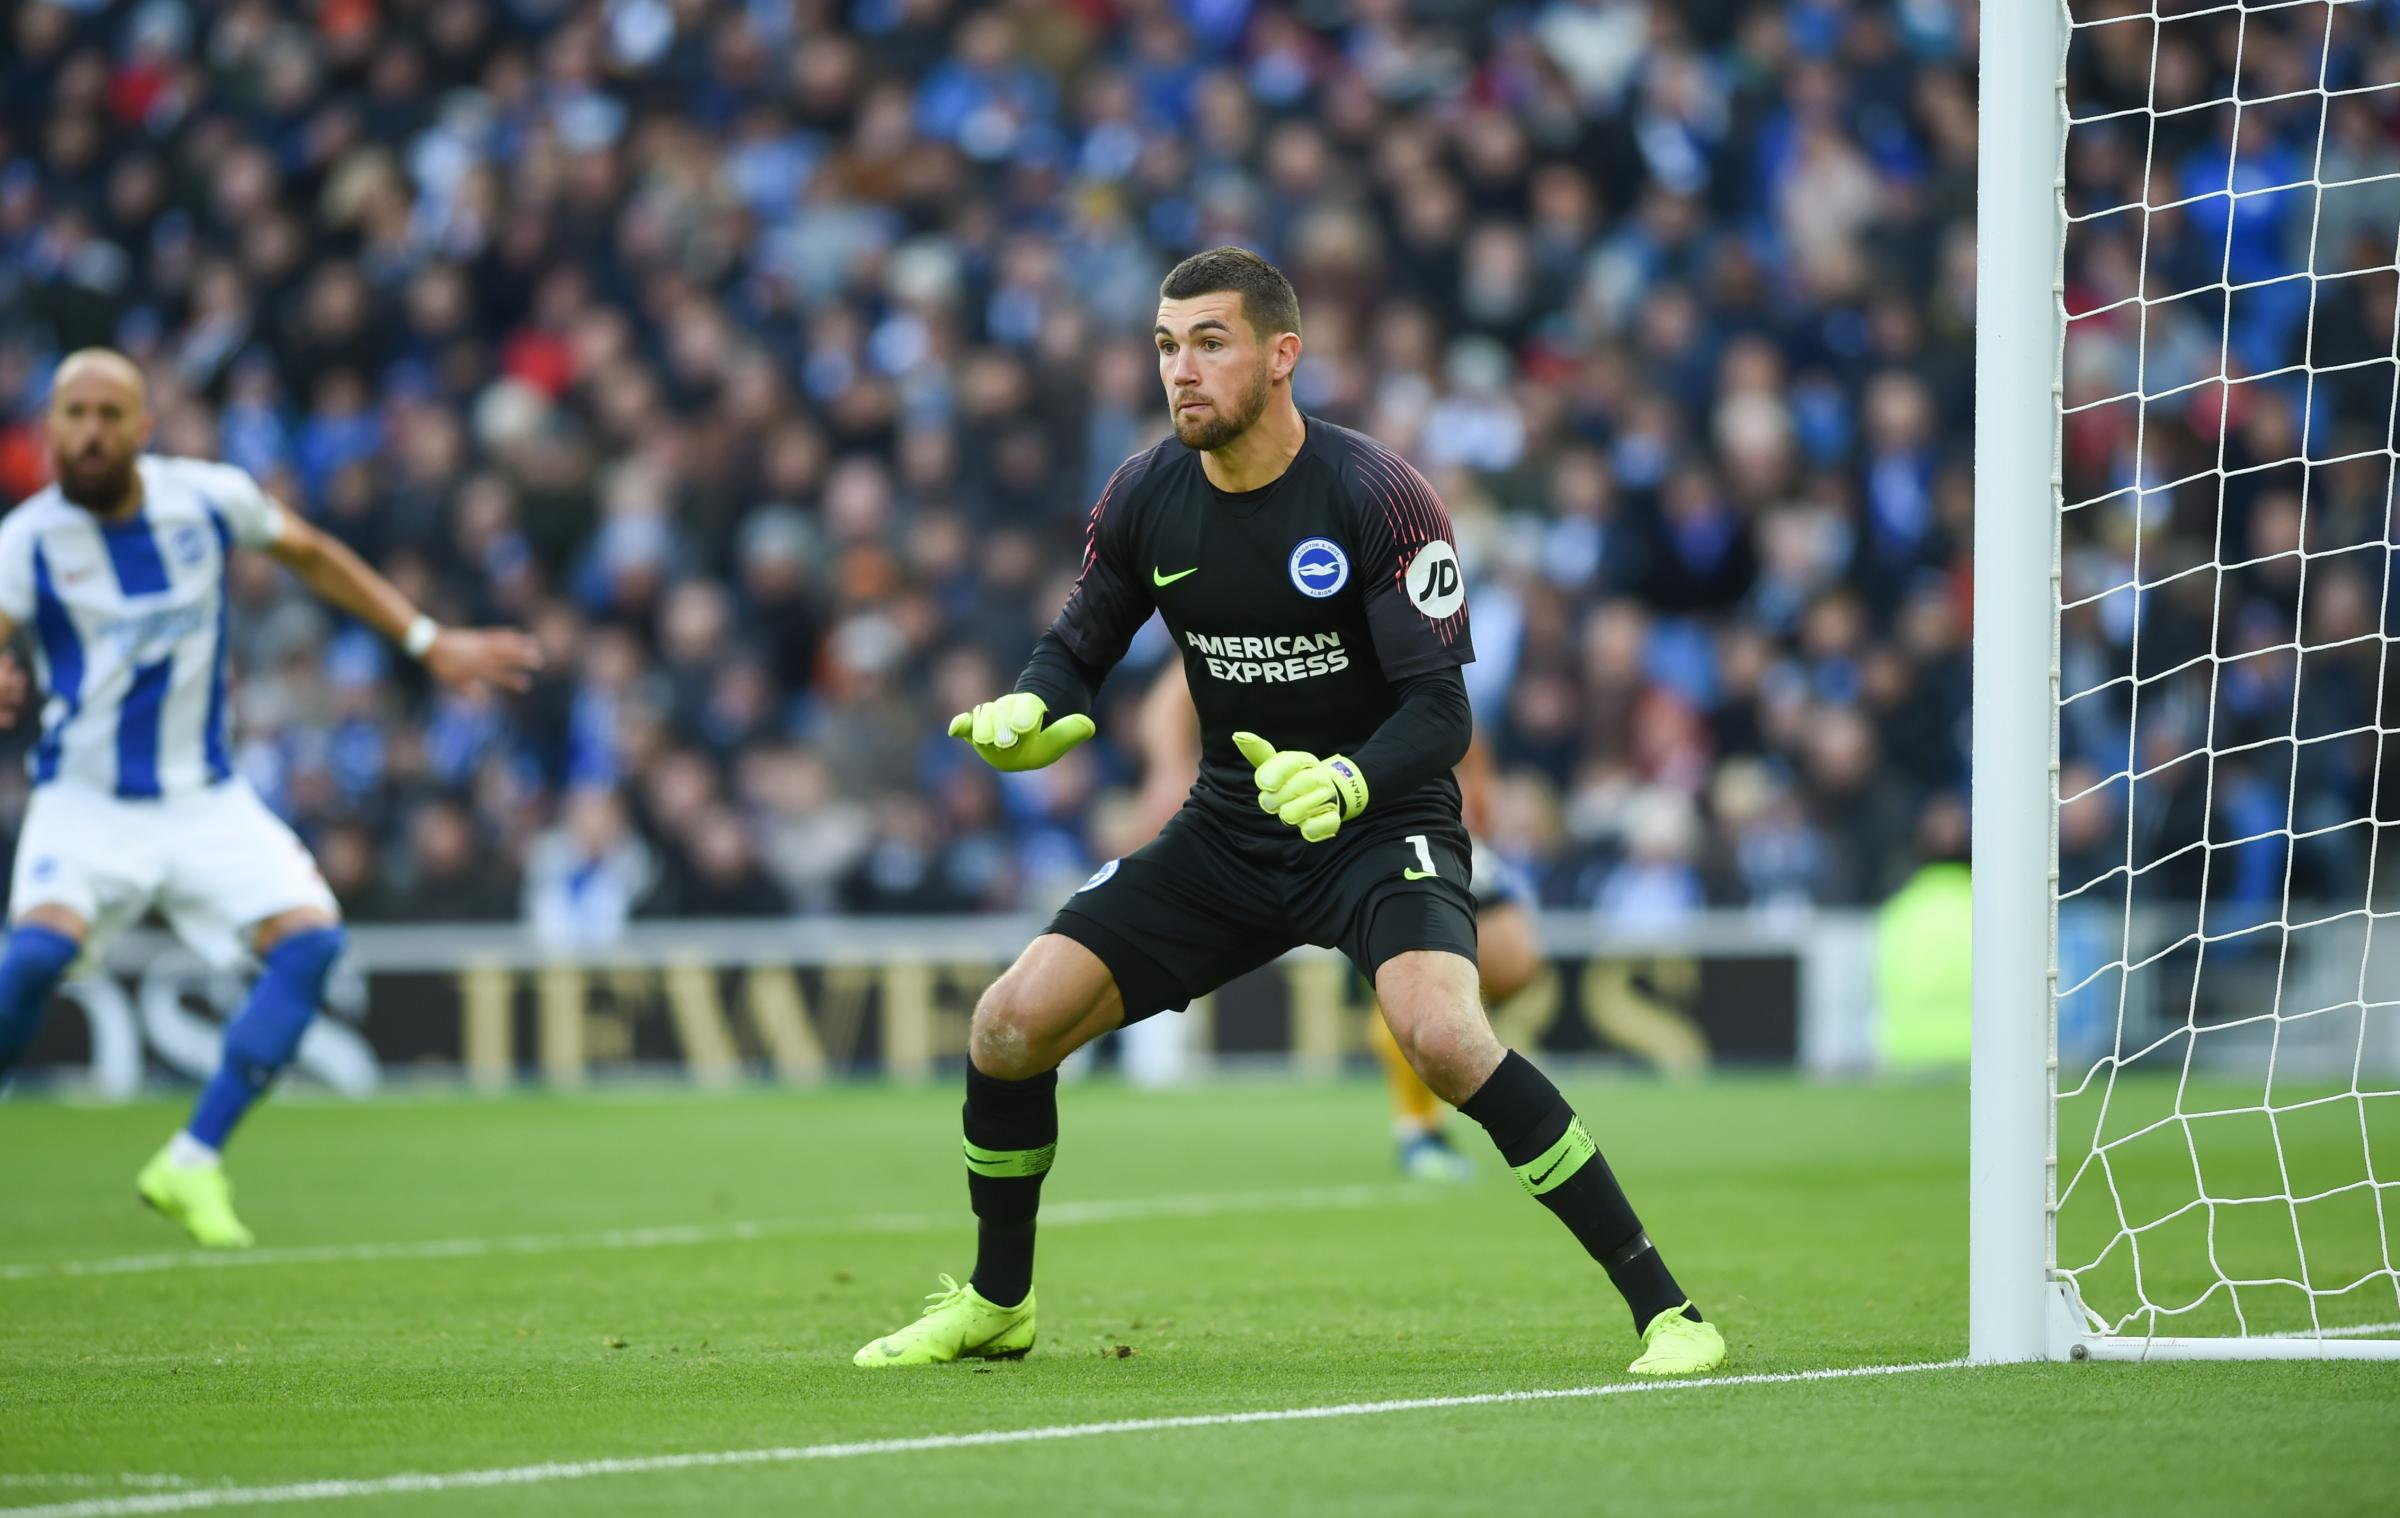 Albion No.1 Ryan speaks about Man United link